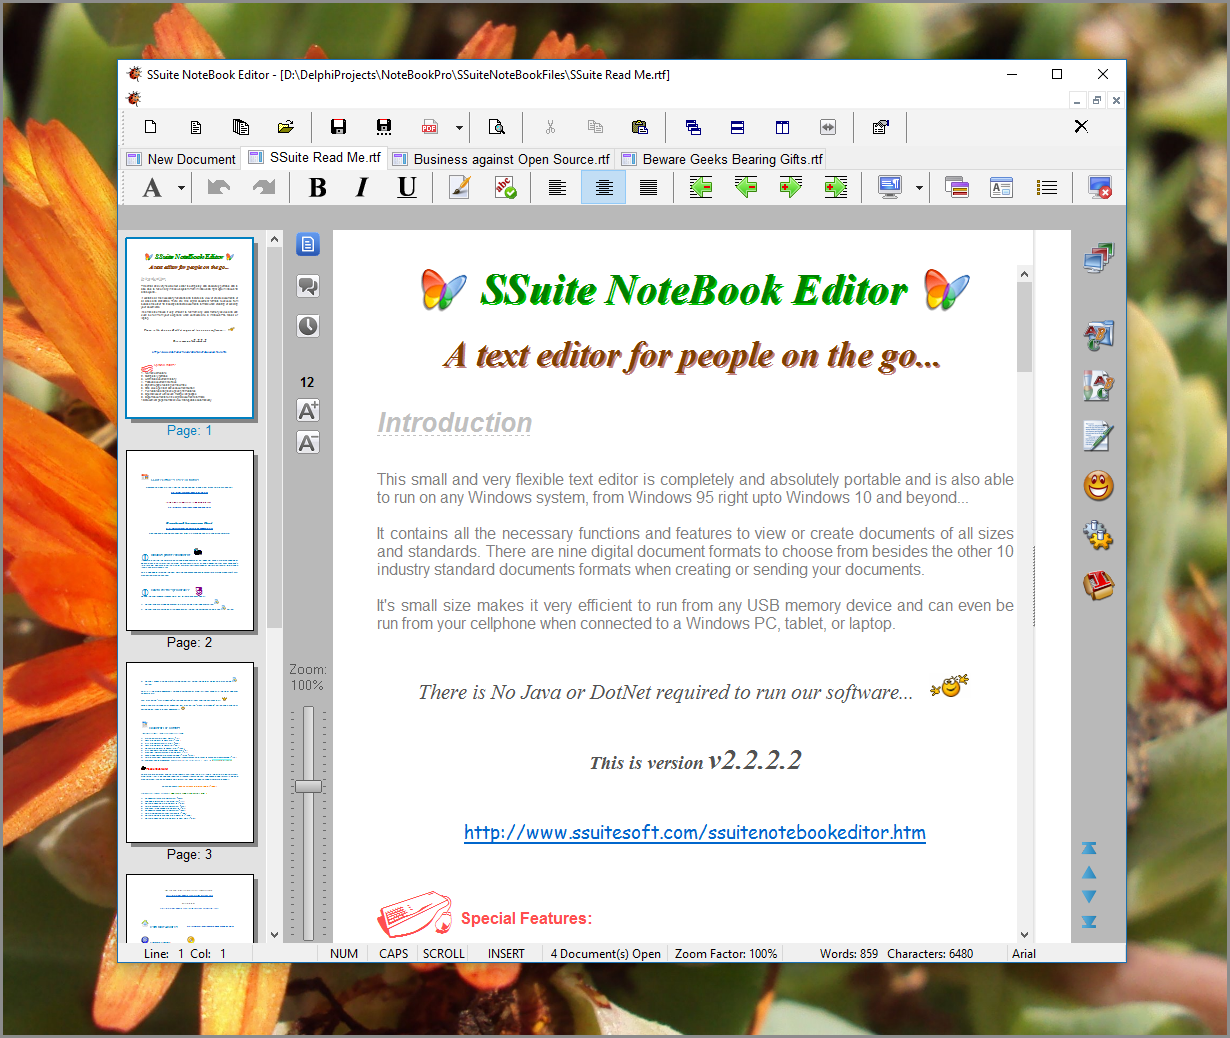 SSuite NoteBook Editor Screen shot